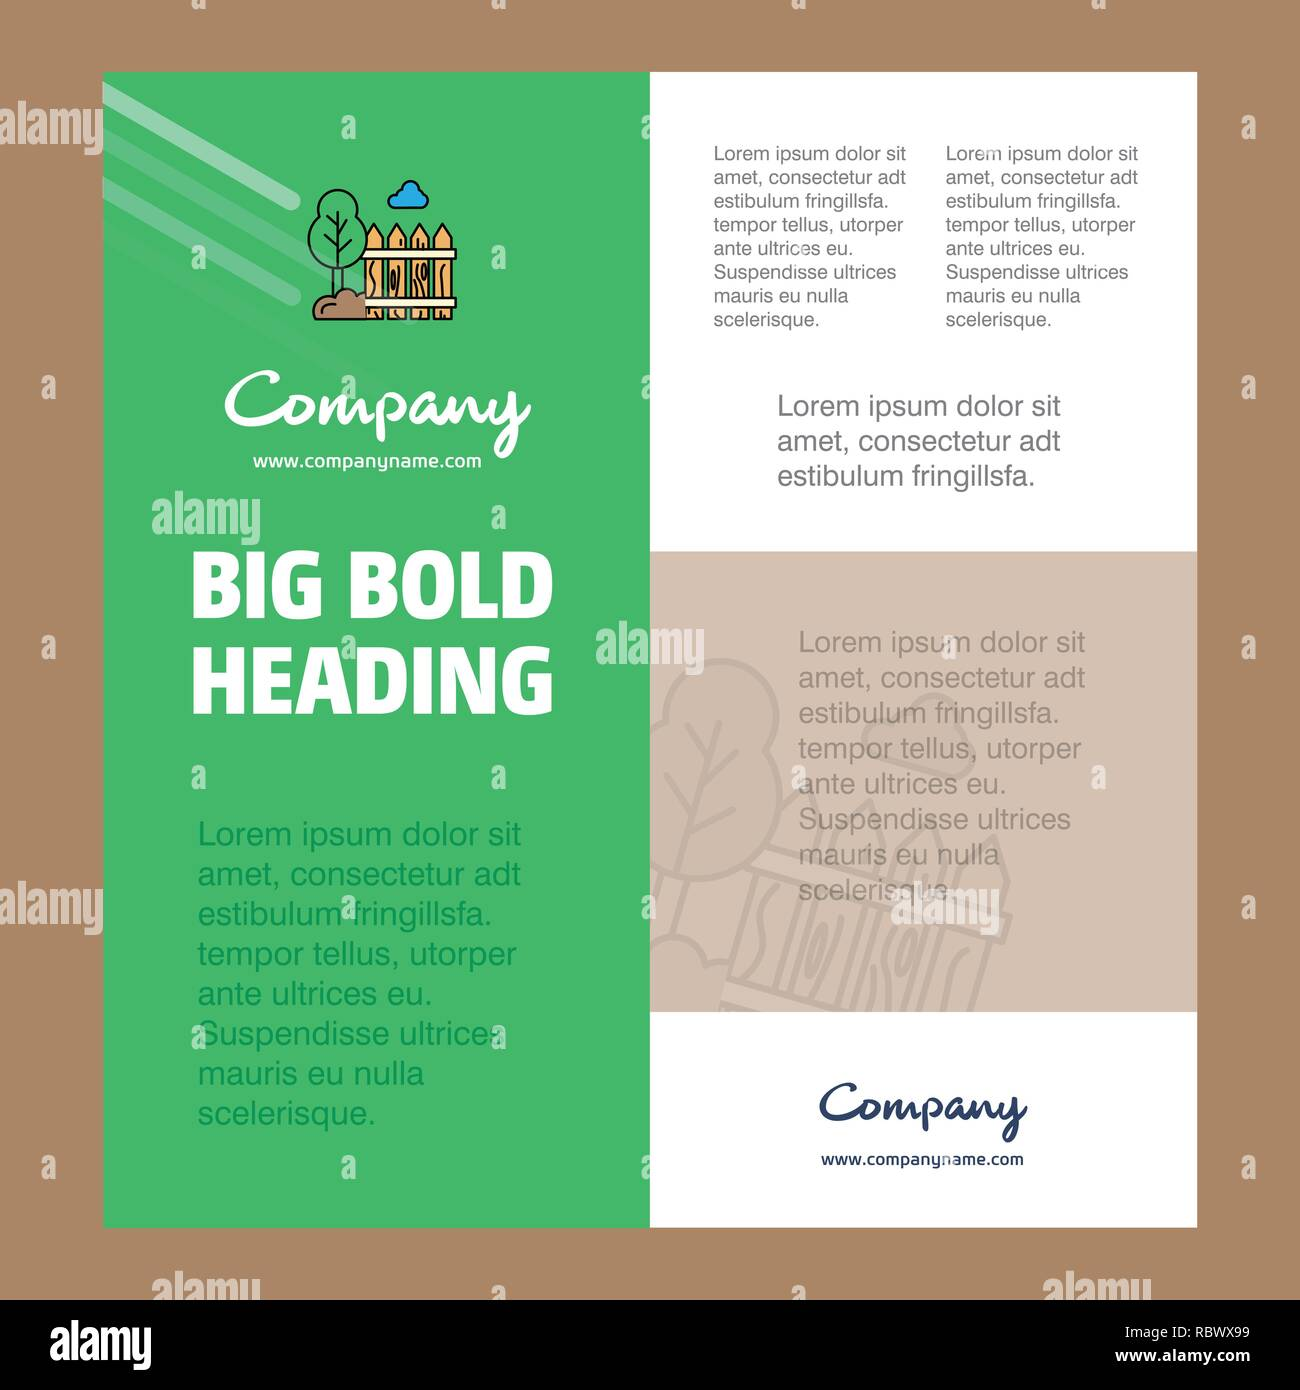 Garden Business Company Poster Template. with place for text and images. vector background - Stock Vector